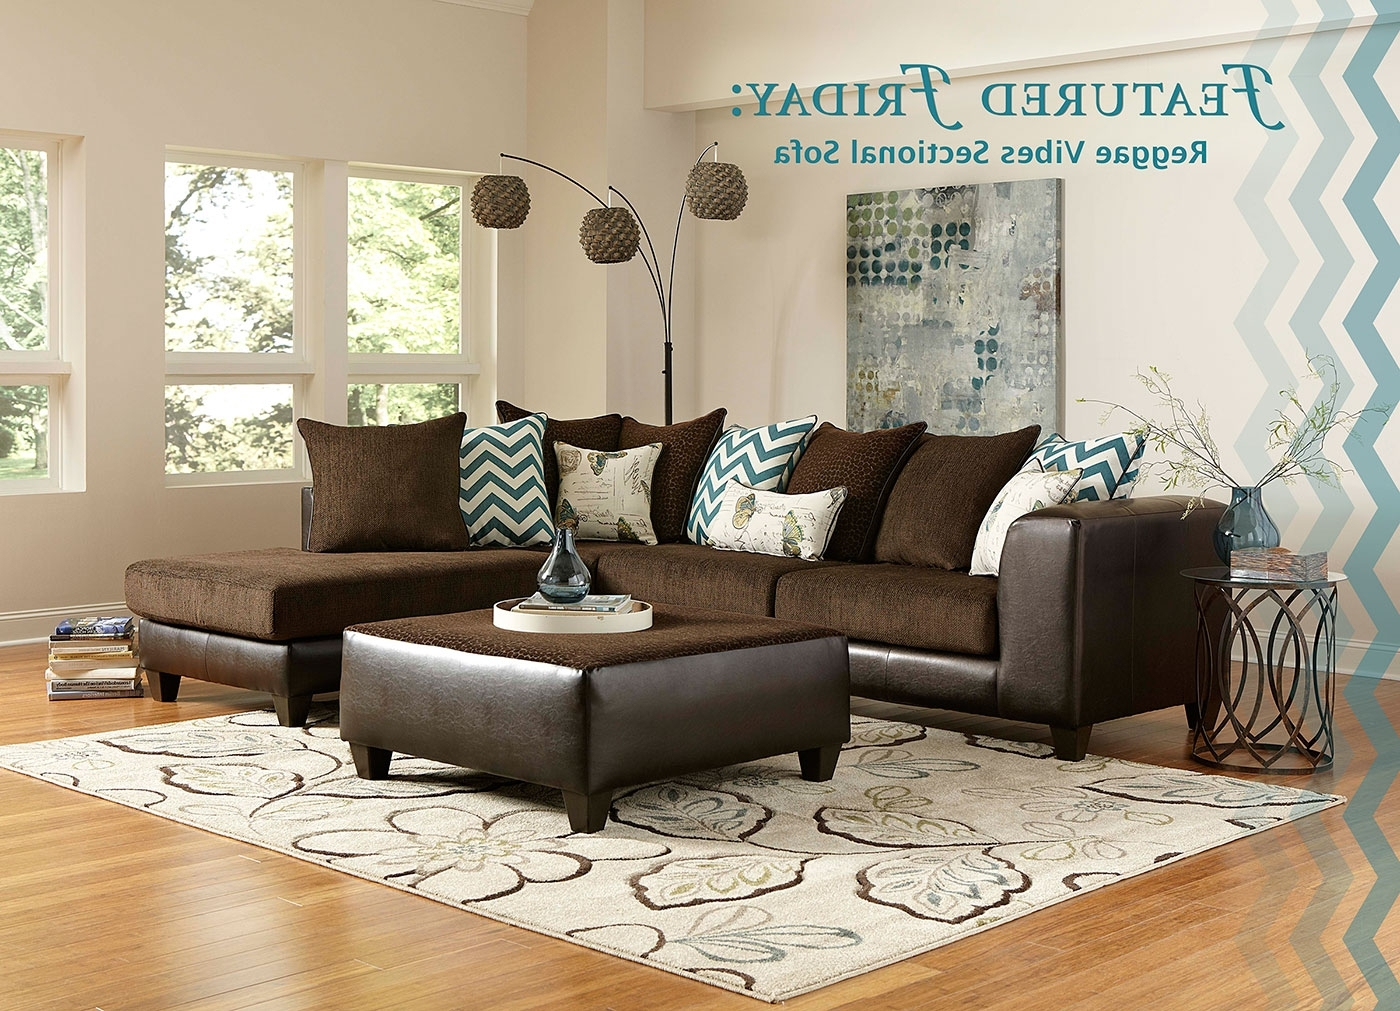 Newest Furniture: American Freight Sectionals For Luxury Living Room In Sectional Sofas In Savannah Ga (View 16 of 20)